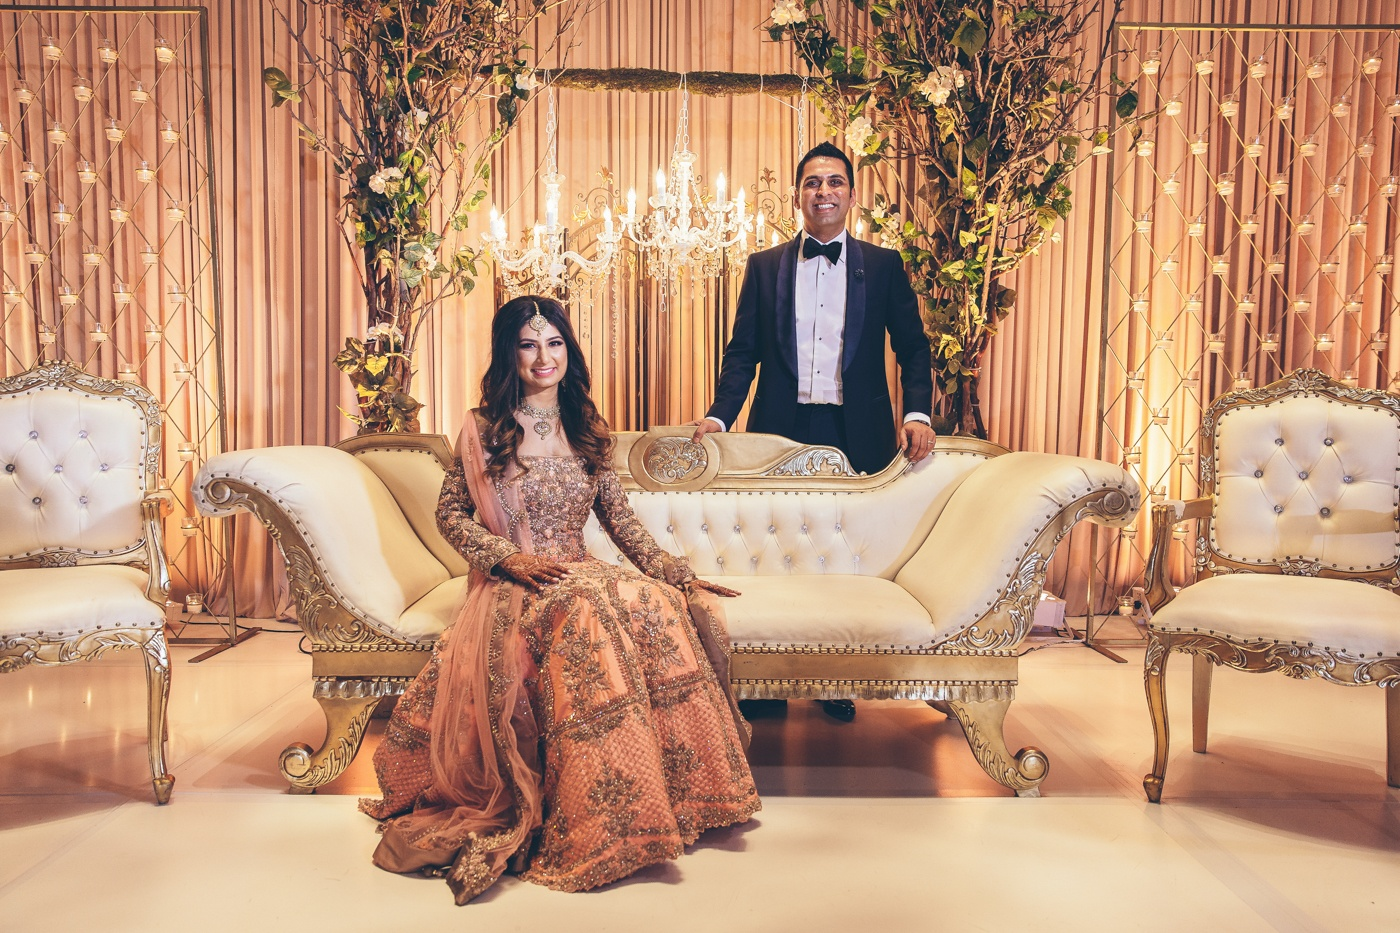 Top 13 Indian Wedding Reception Entrance Song For Couples